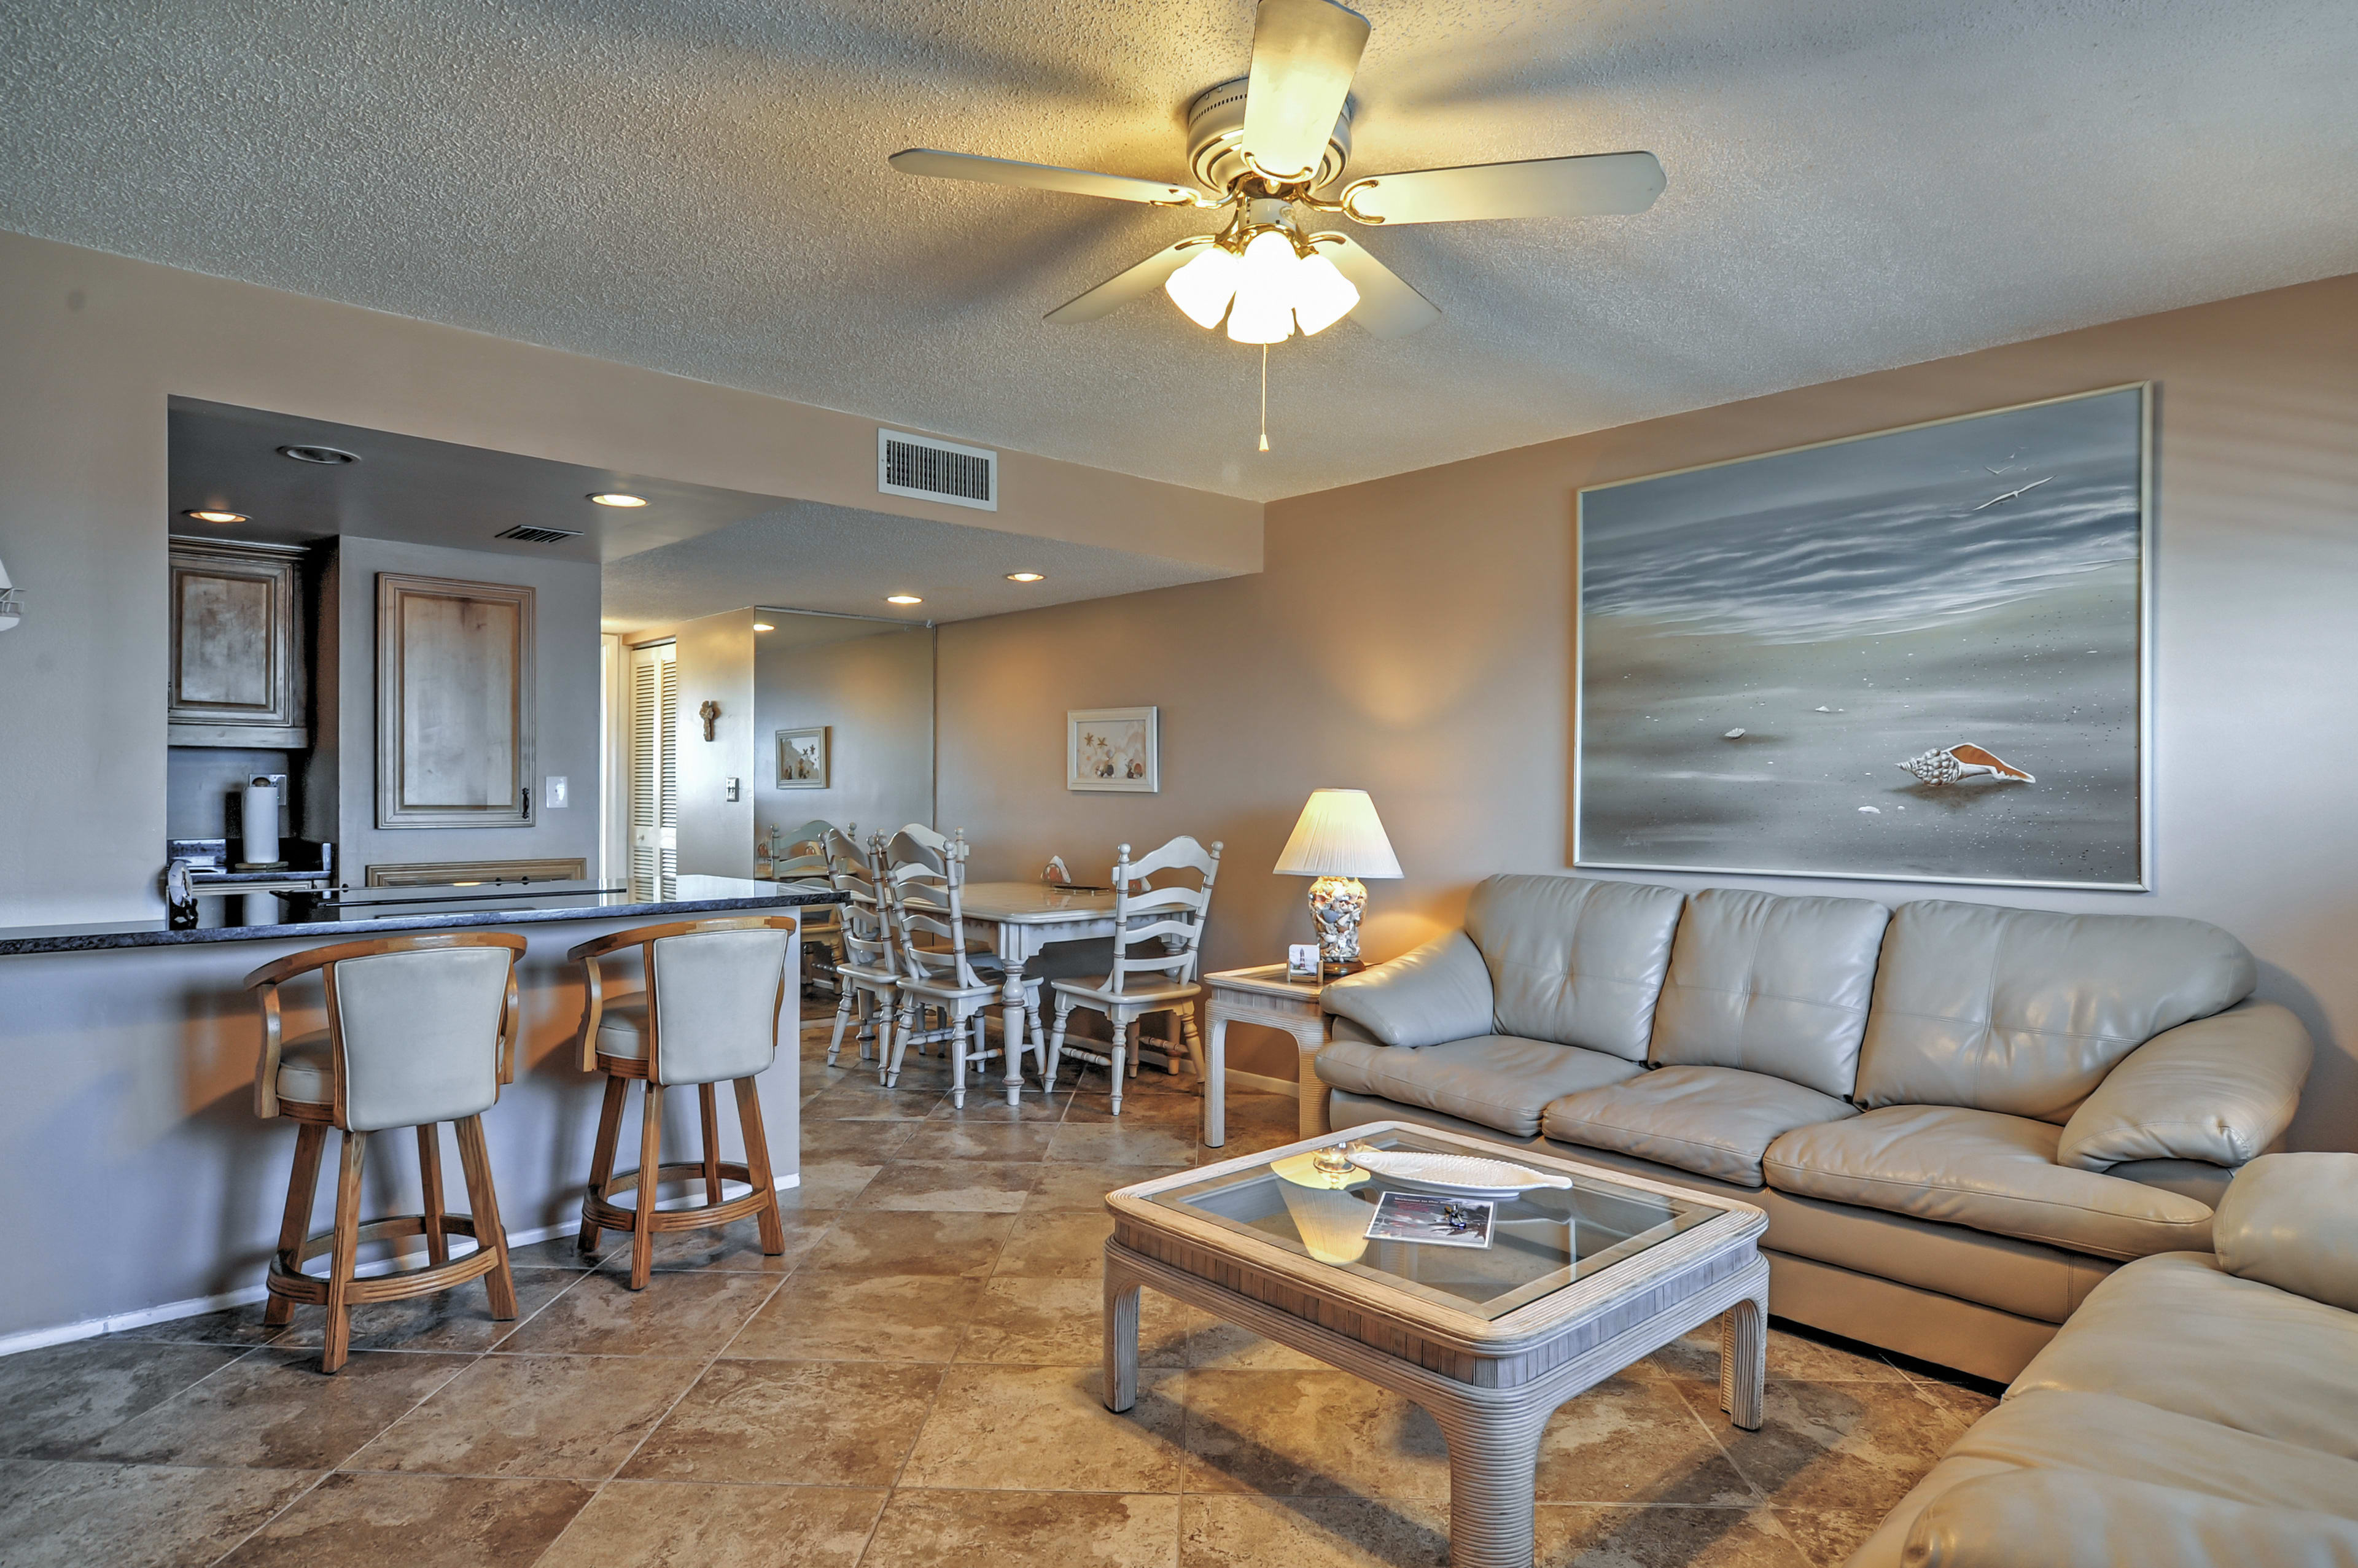 Cool off in the beachy condo.